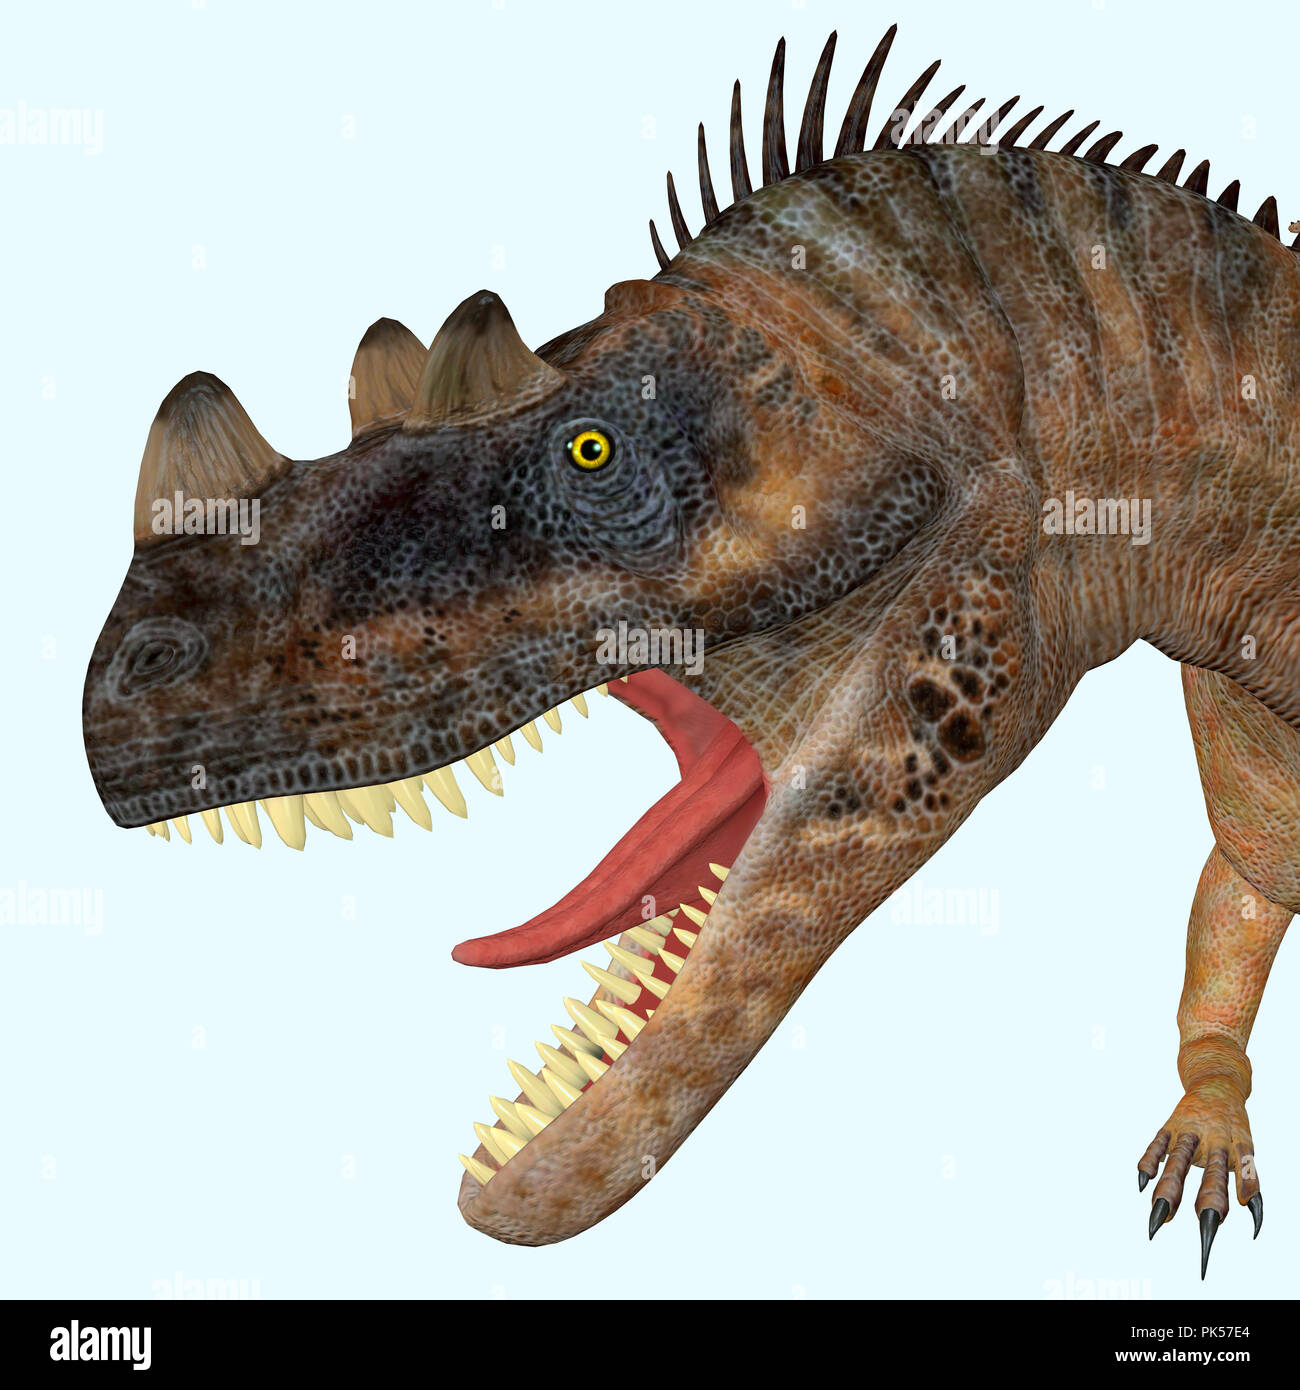 Ceratosaurus Dinosaur Head - Ceratosaurus was a theropod carnivorous dinosaur that lived in North America during the Jurassic period. - Stock Image